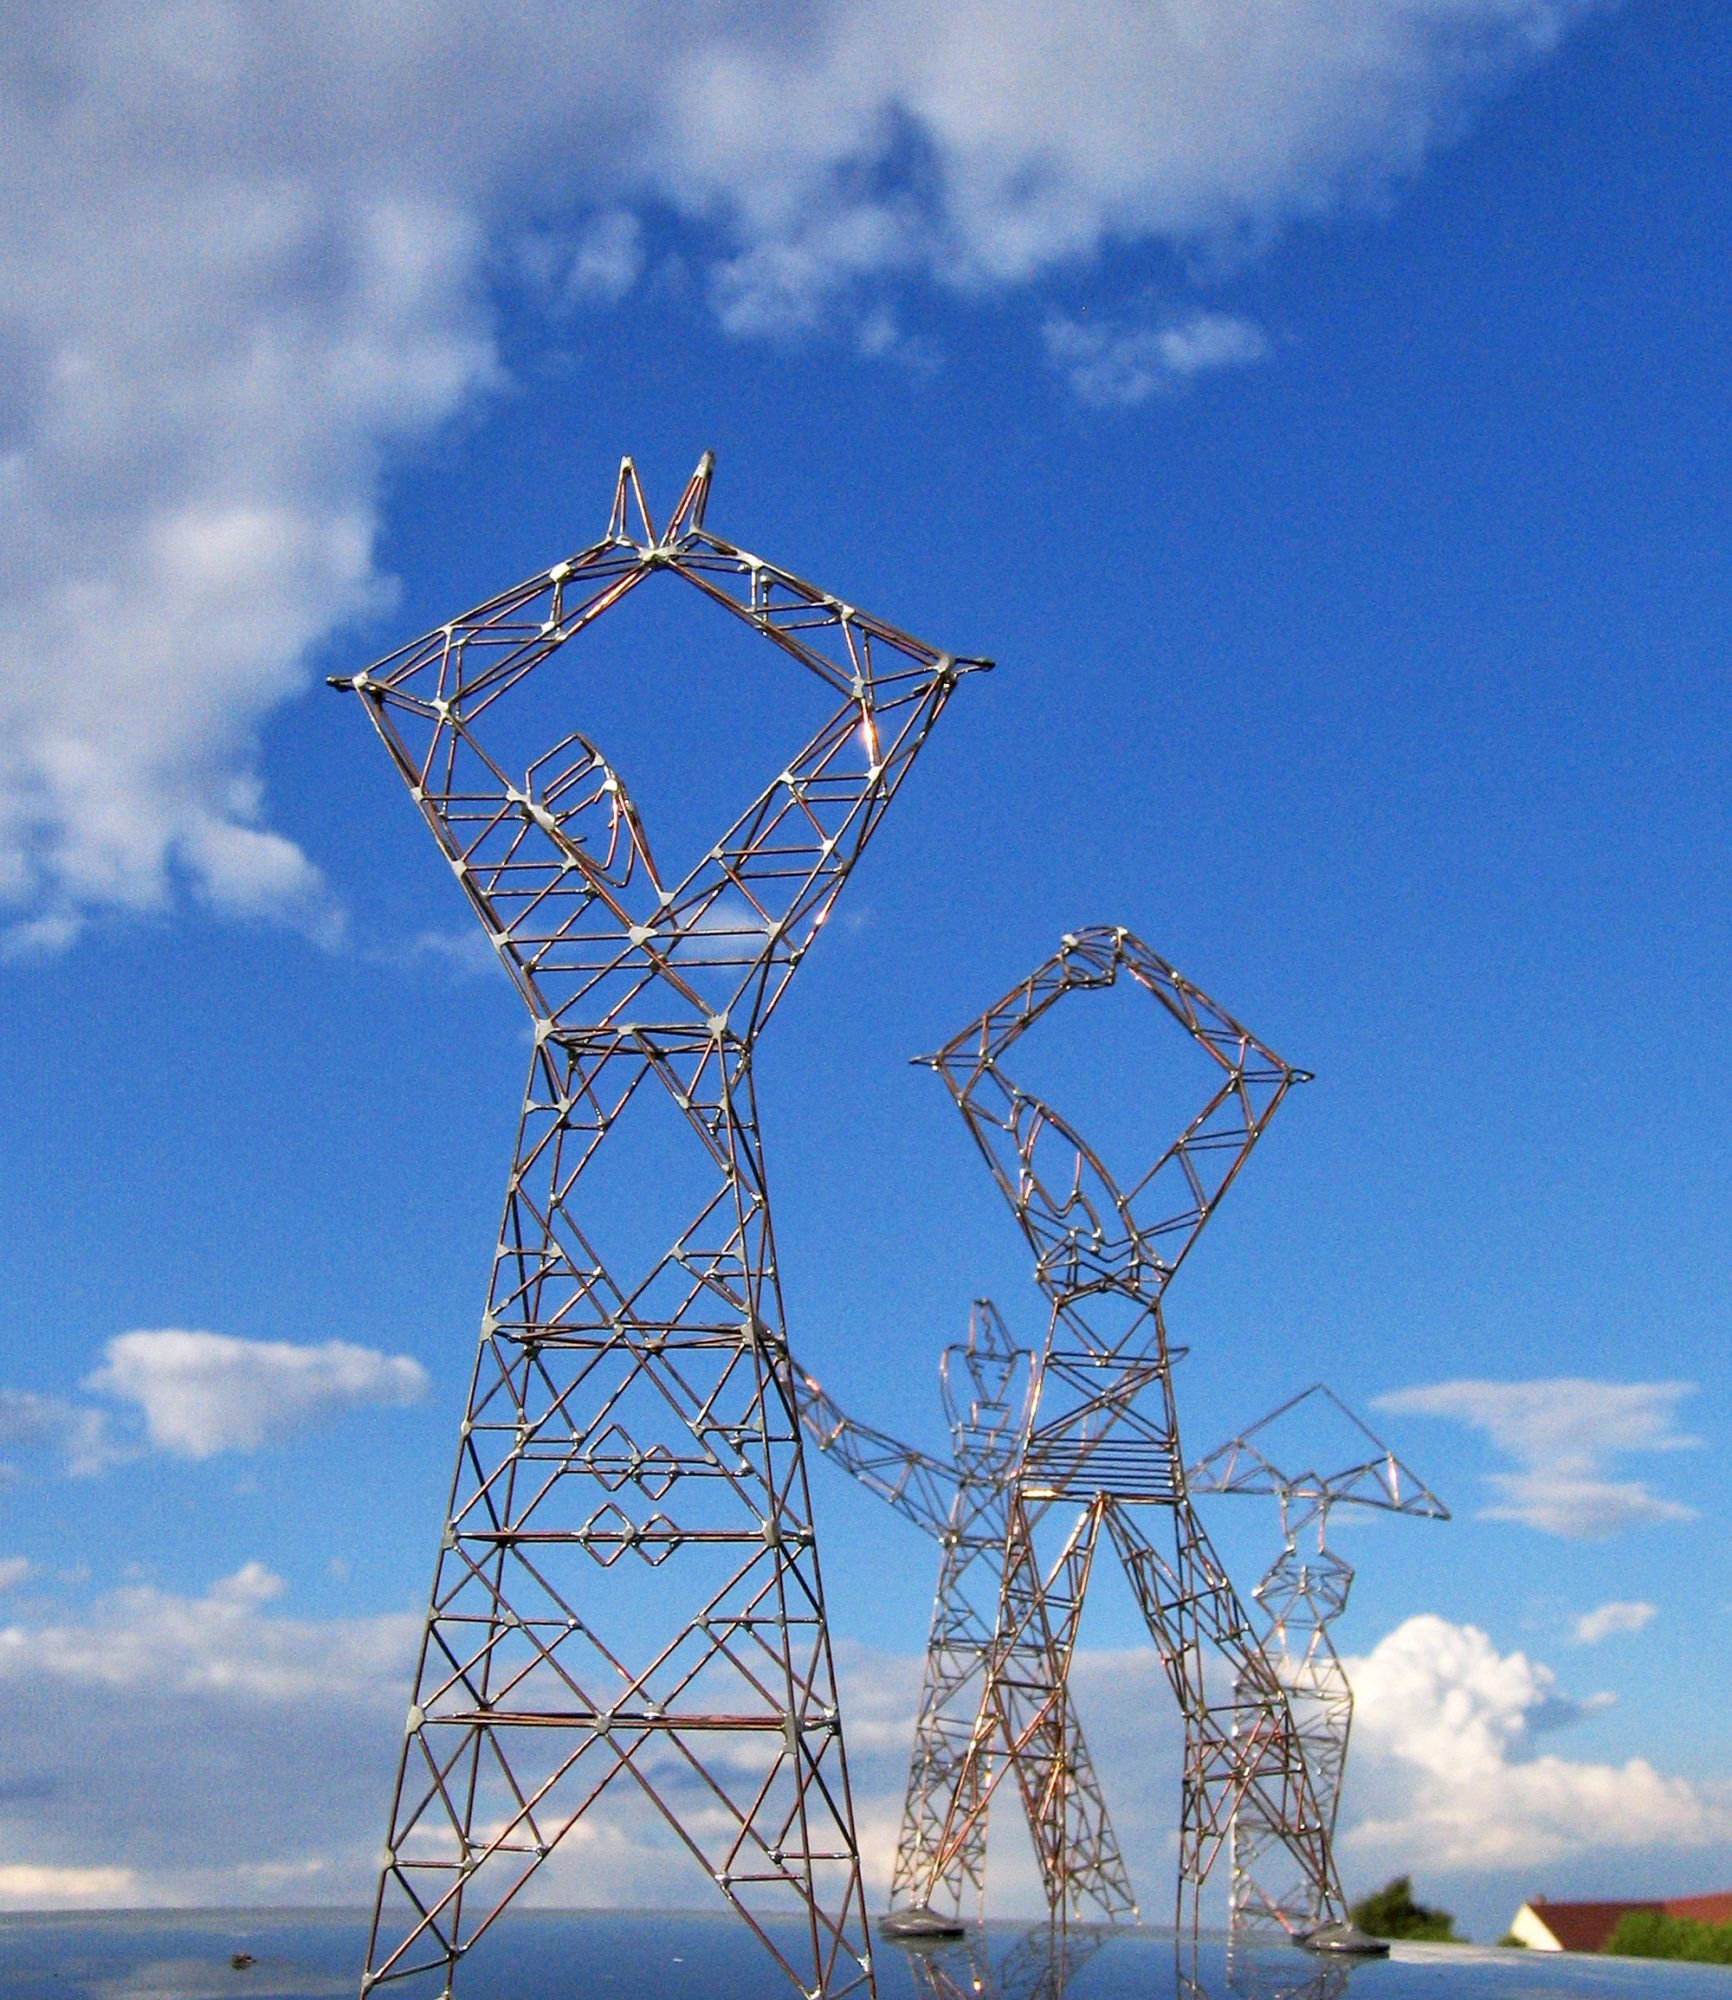 Giant Ladies, Four Sculpture-Pylons